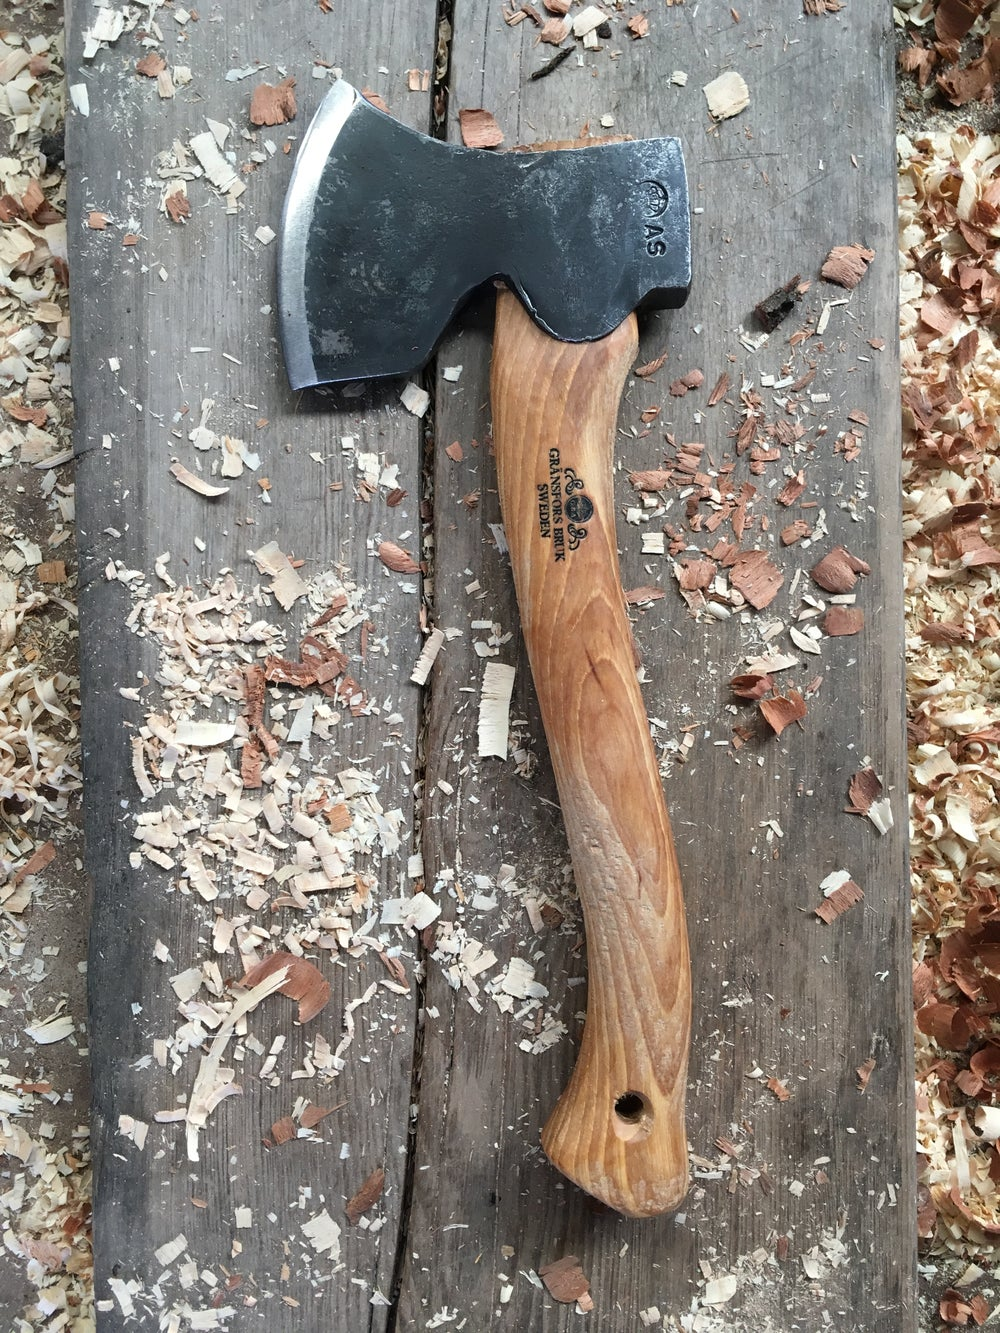 Image of Gränsfors Bruk Swedish Carving Axe